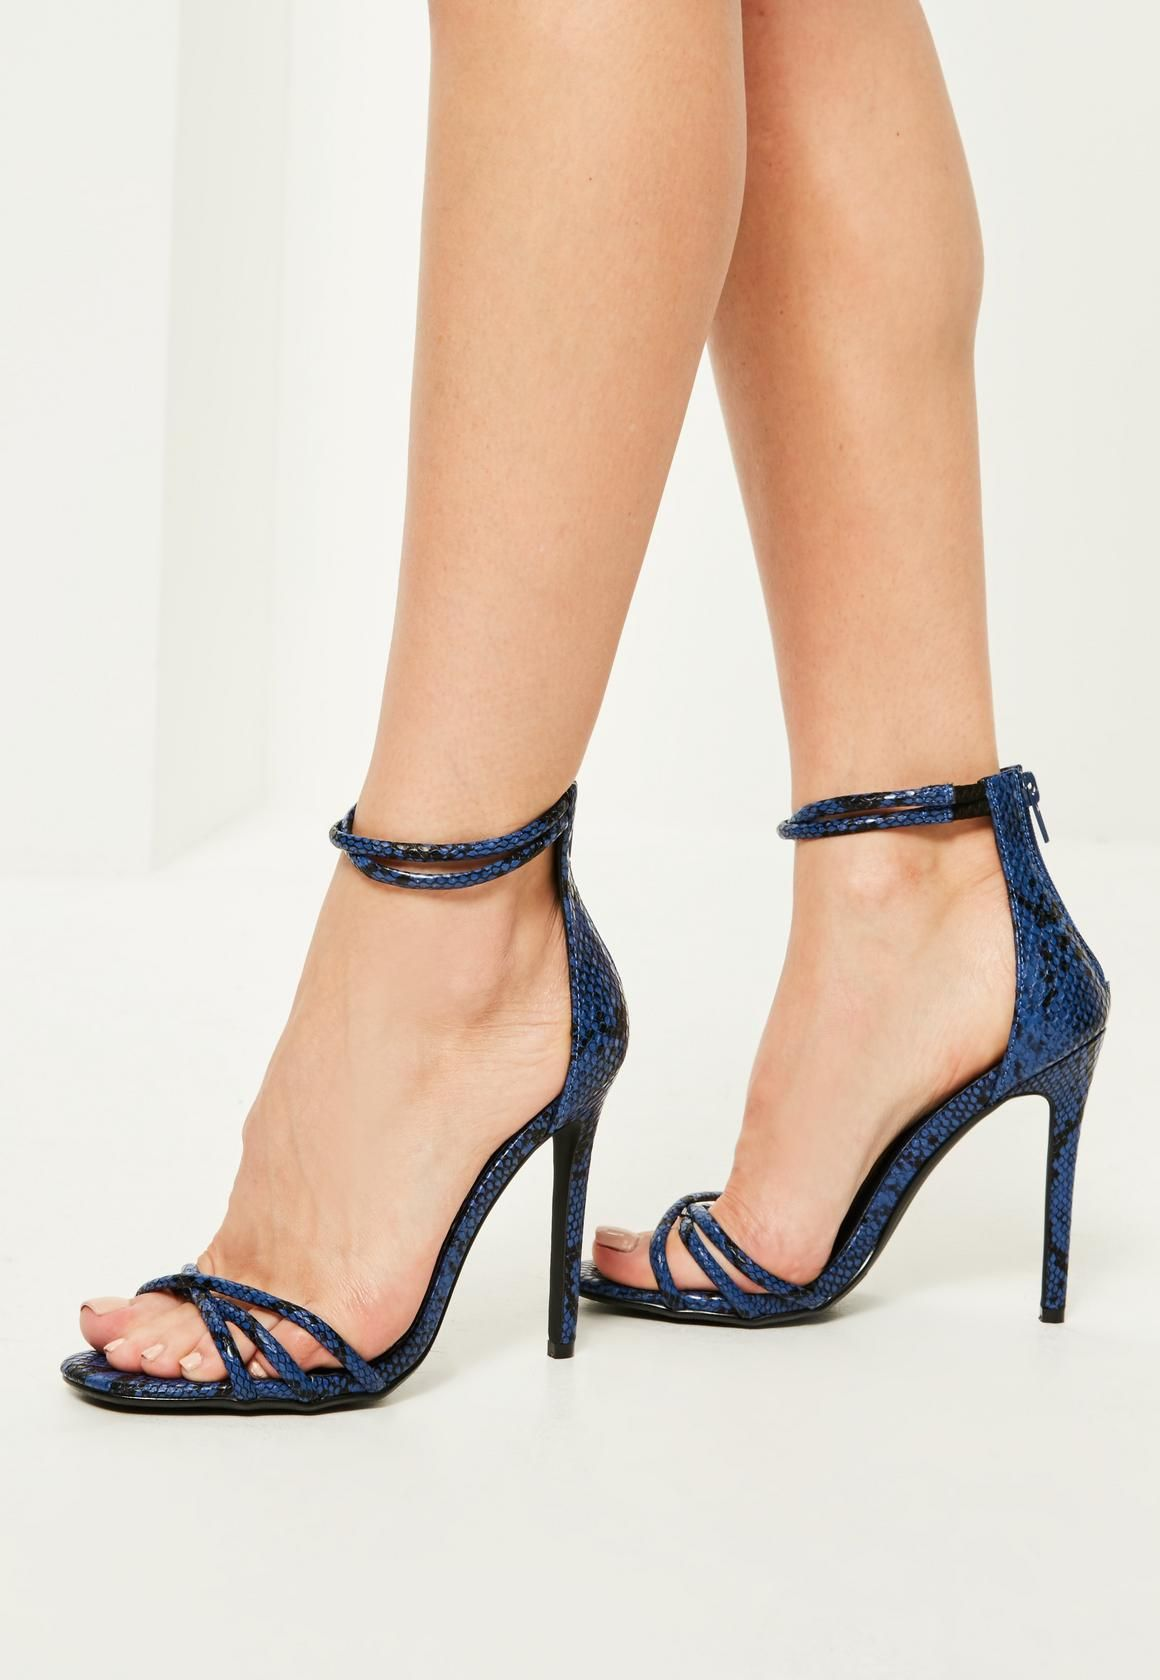 5f0c20ab12e2 Missguided - Blue Snake Effect Cross Strap Barely There Heels ...